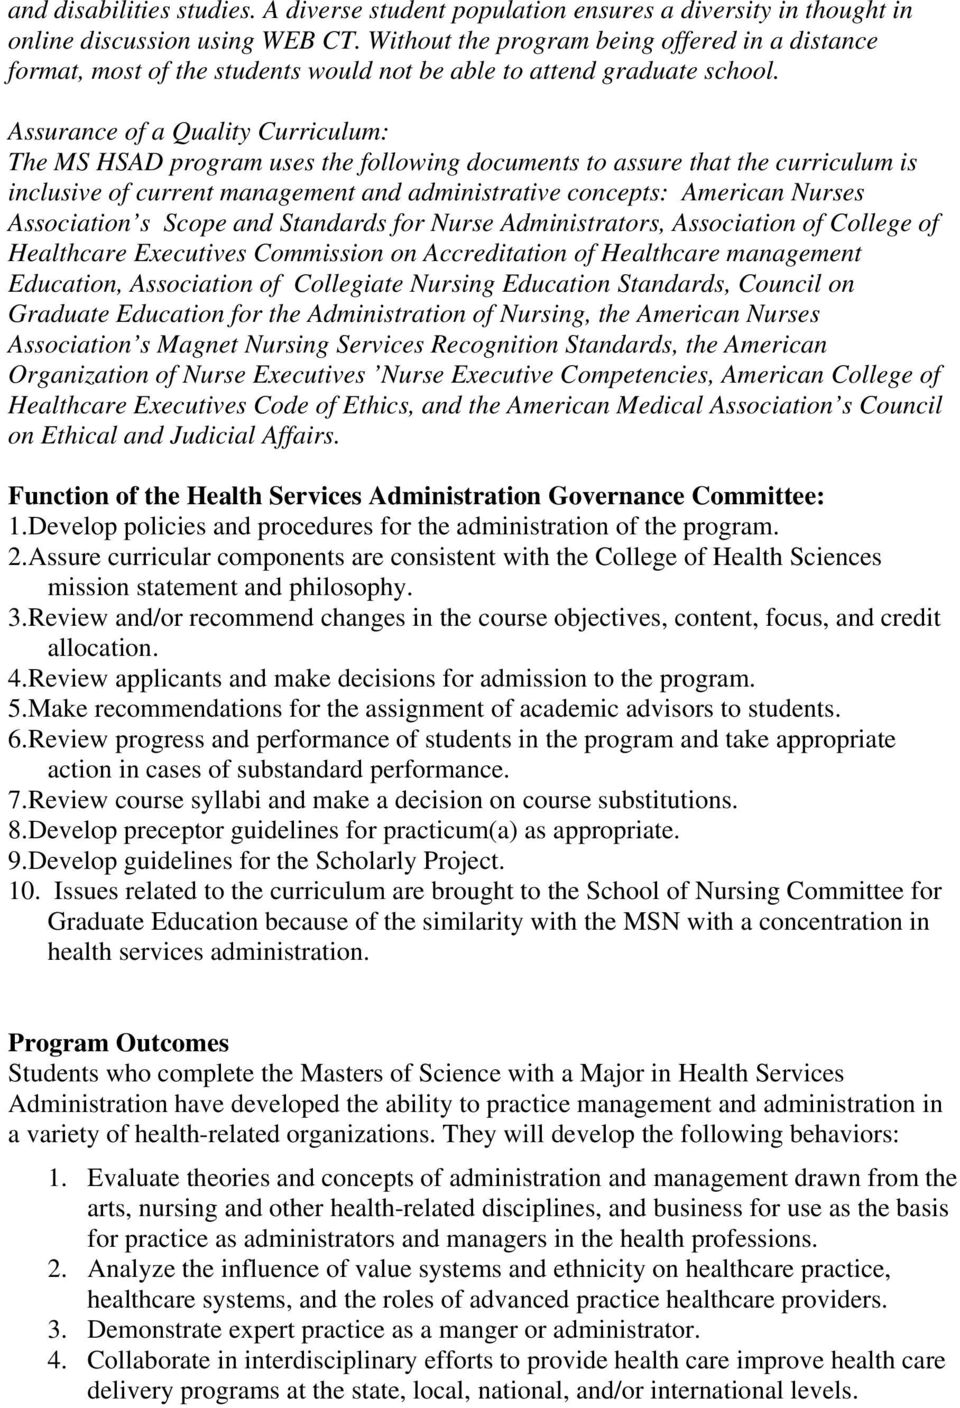 Assurance of a Quality Curriculum: The MS HSAD program uses the following documents to assure that the curriculum is inclusive of current management and administrative concepts: American Nurses